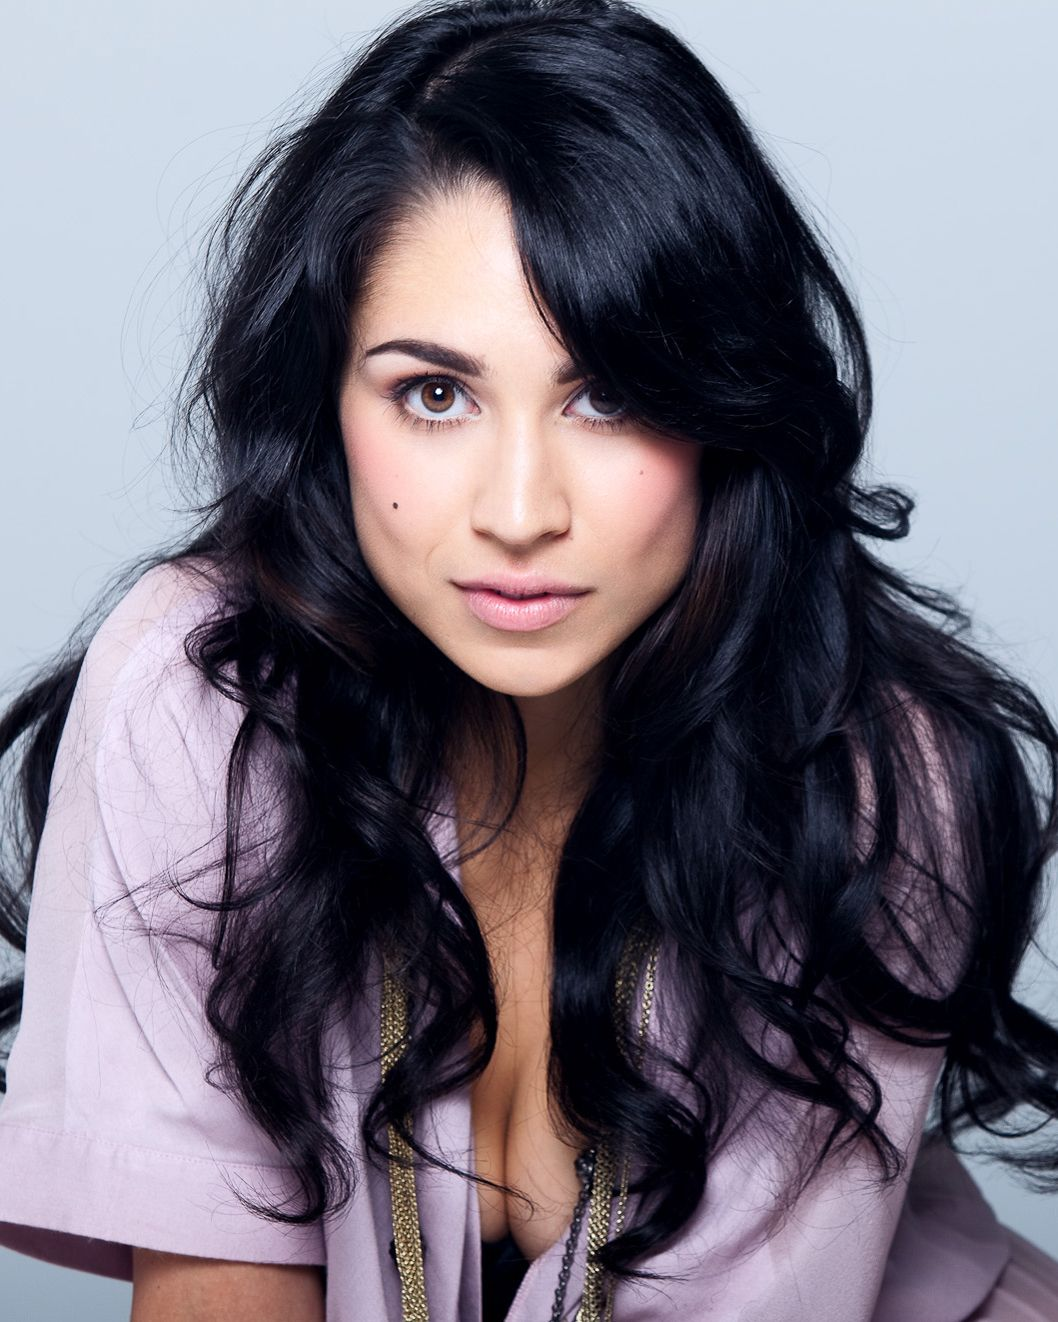 Cassie steele from